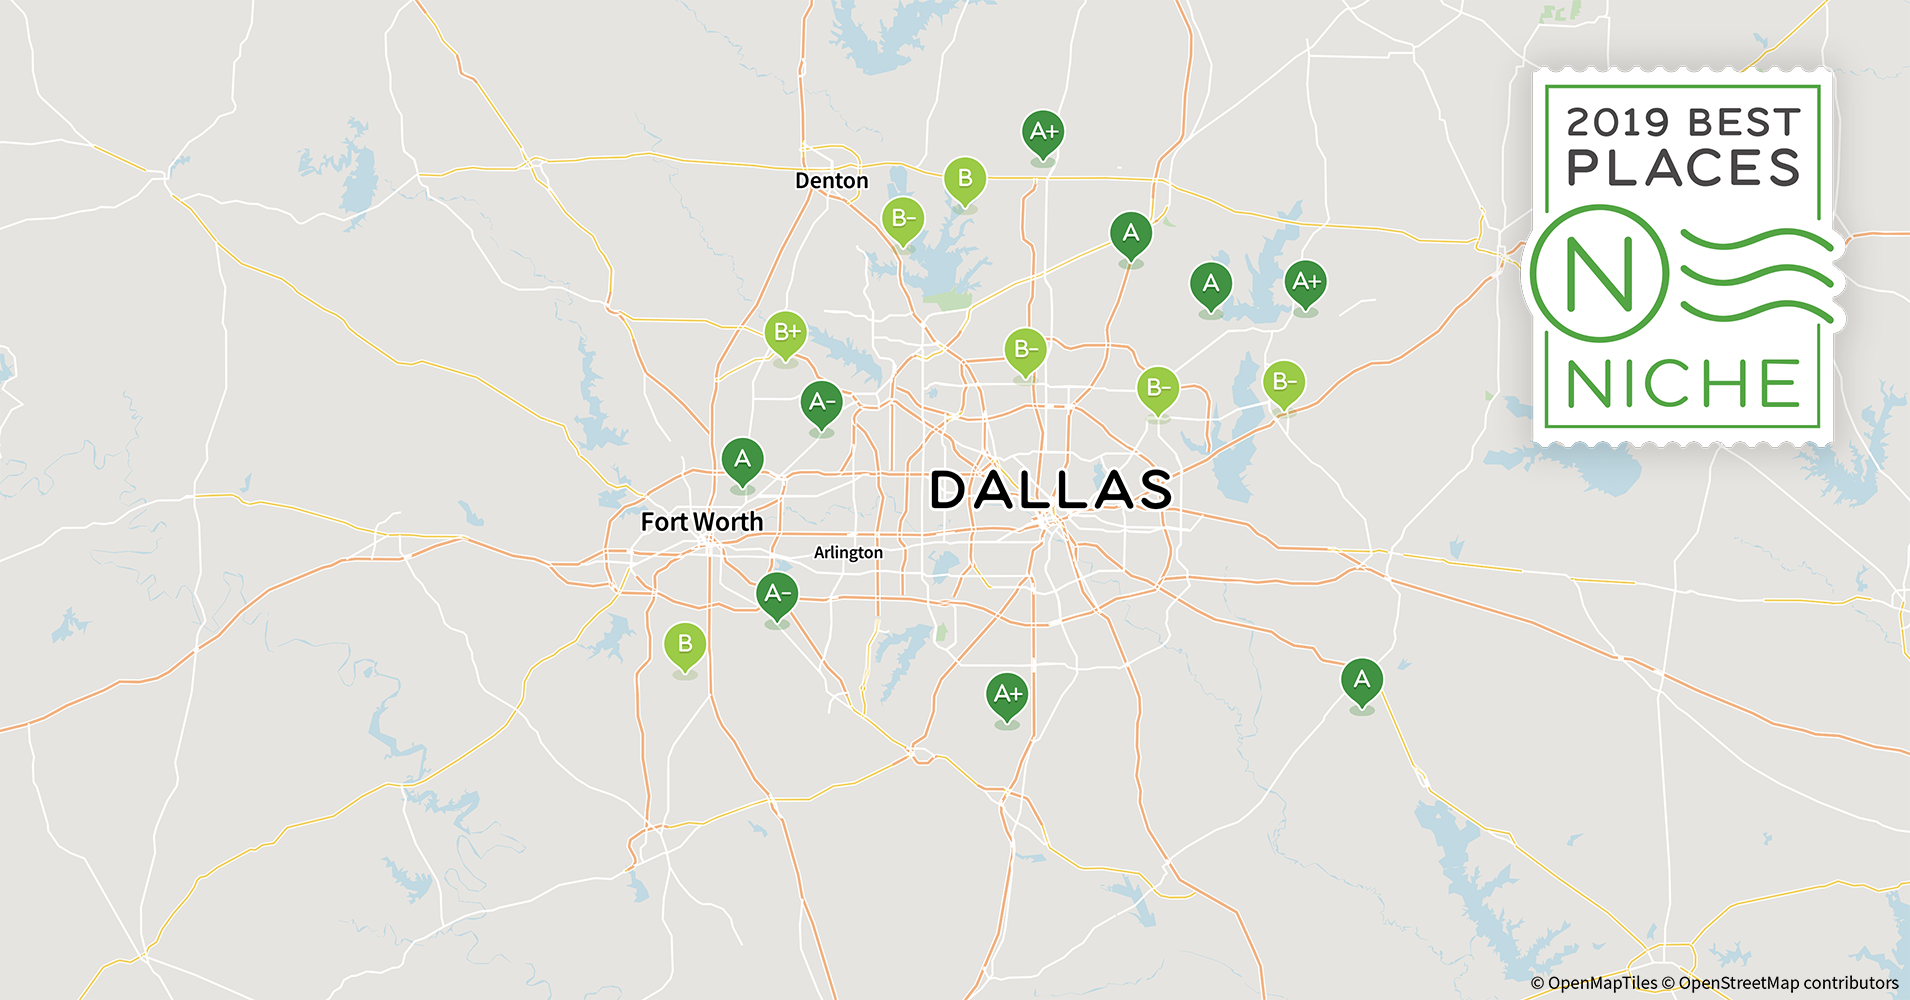 2019 Safe Neighborhoods in Dallas-Fort Worth Area - Niche